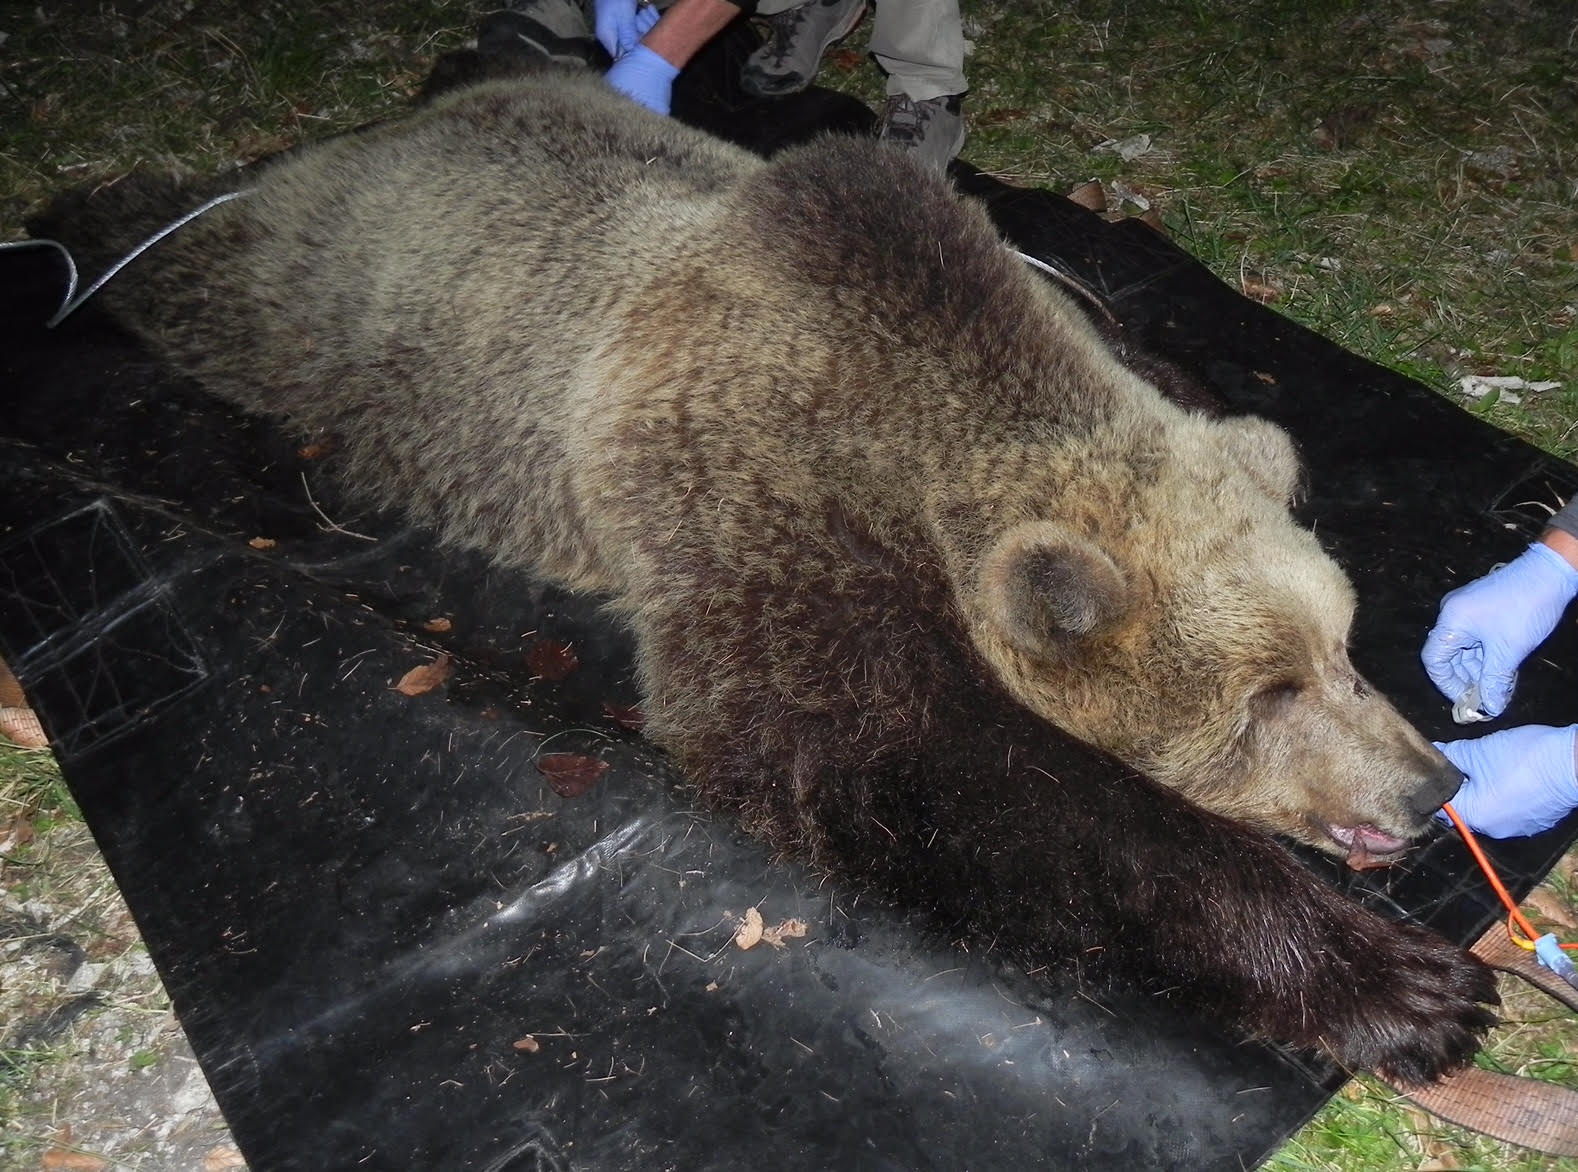 Captured and radio-collared a bear in Trentino